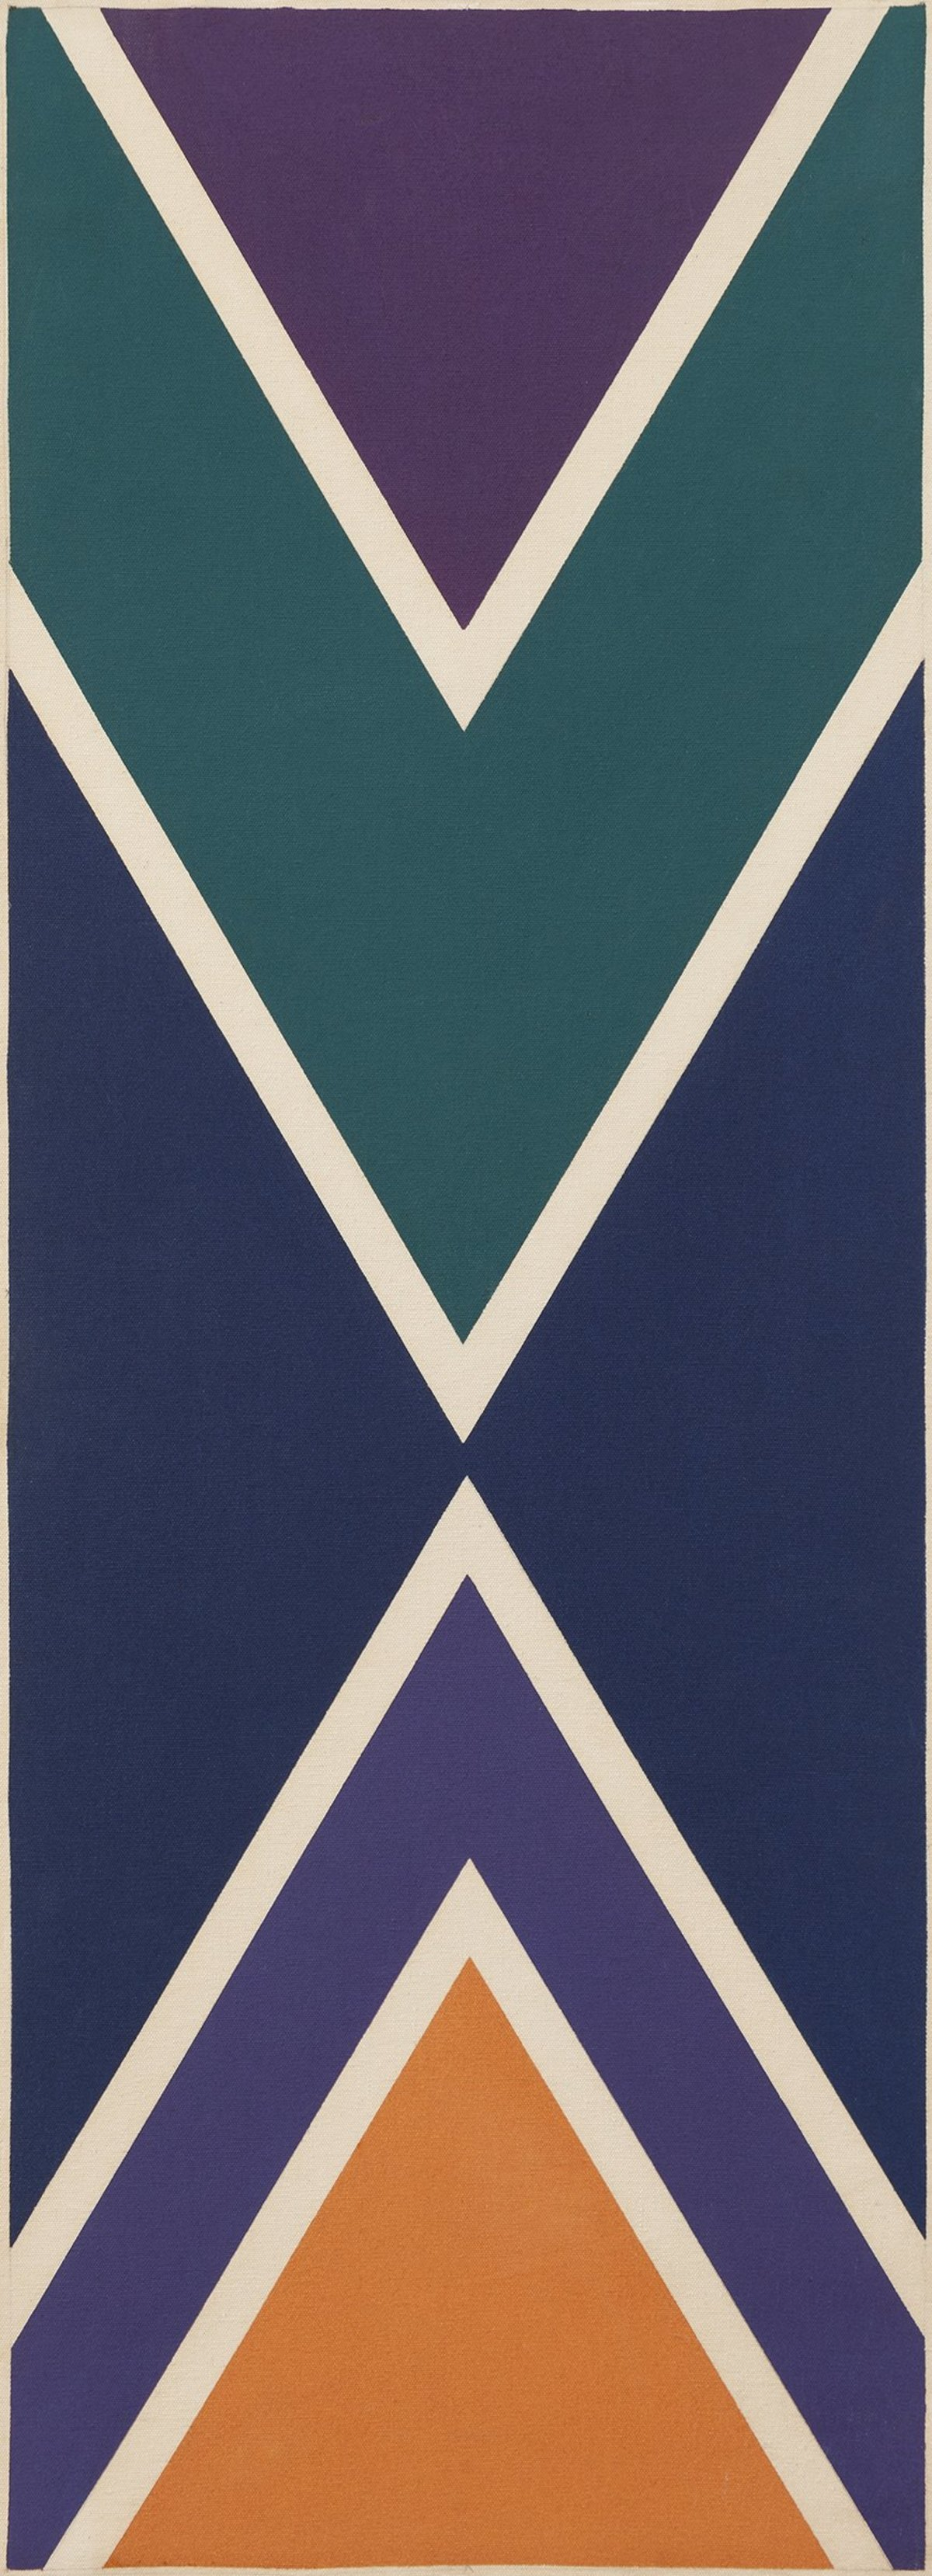 Jerry Walden, Untitled No. 1 (1971), 1971